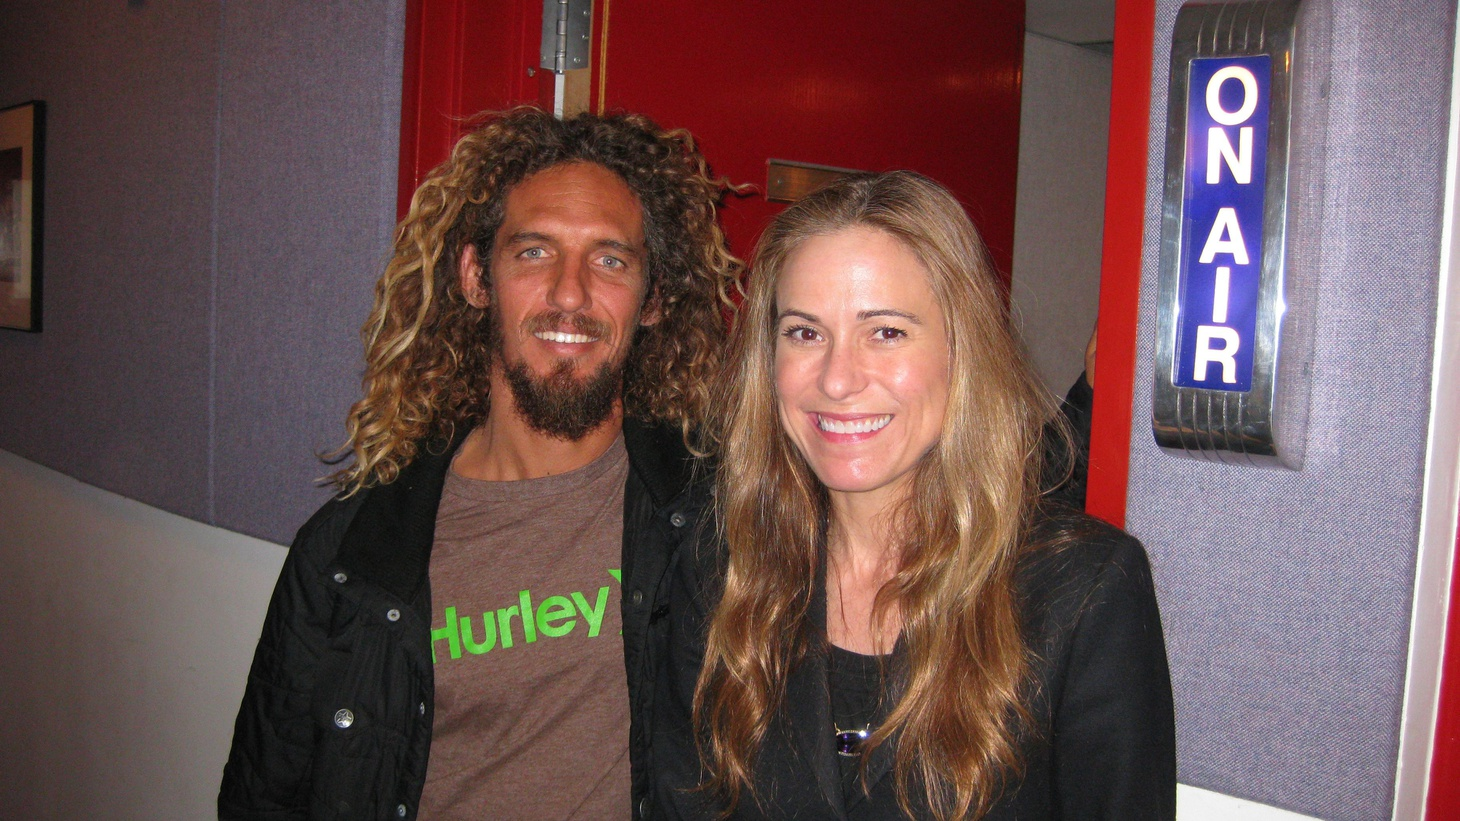 Surfer Rob Machado is one of the most stylish and skilled wave riders out there and has won many of pro surfing's most prestigious contests. He shares stories about discovering the Blues, bonding with a Beatle and jamming to Jimi Hendrix, all in his trademark laidback style. He just released a surf film -- Melali: The Drifter Sessions -- documenting sessions across the vast Indonesian island chain and contributed to the movie's score.